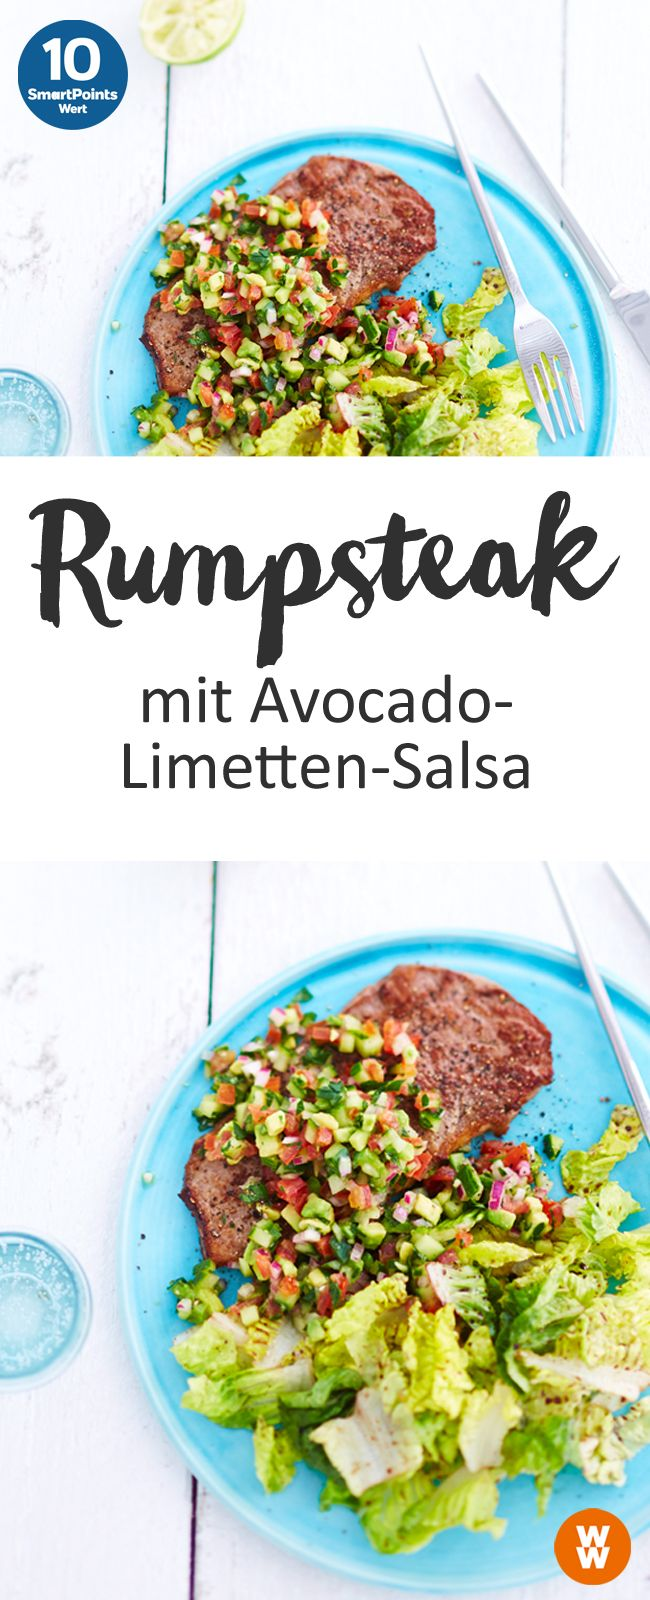 Rumpsteak mit Avocado-Limetten-Salsa | 10 SmartPoints/Portion, Weight Watchers, fertig in 20 min.